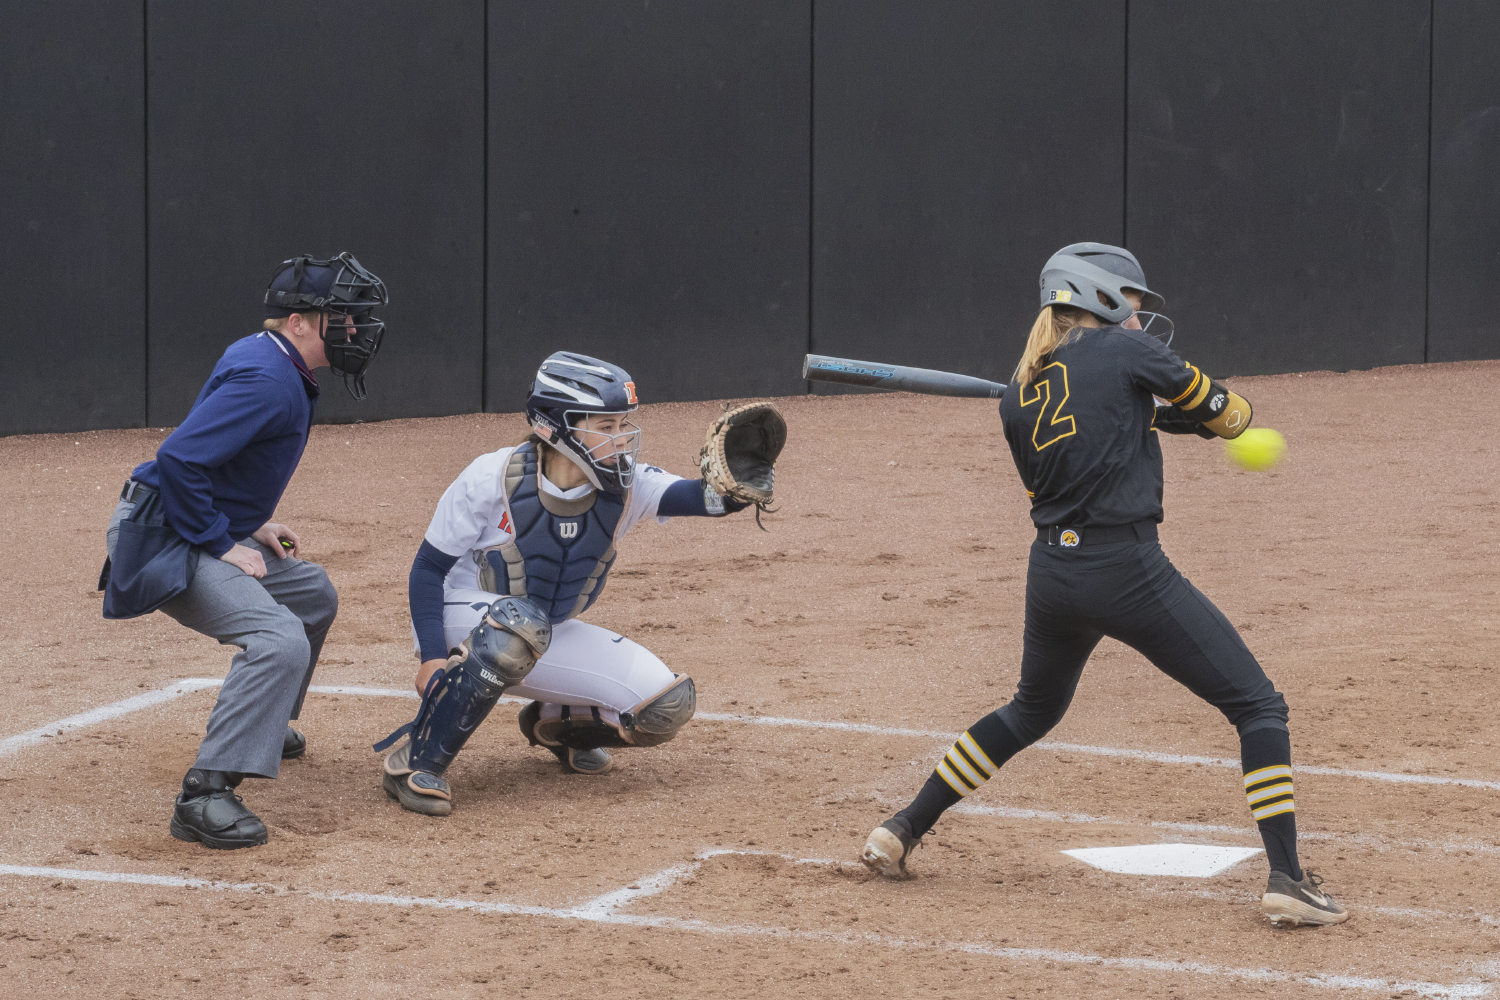 Iowa utility Aralee Bogar watches a pitch during the first game in a double header against Illinois on Saturday, April 13, 2019. Bogar got a walk to first. The Hawkeyes fell to the Illinis 12-11 but came back to win the second game.